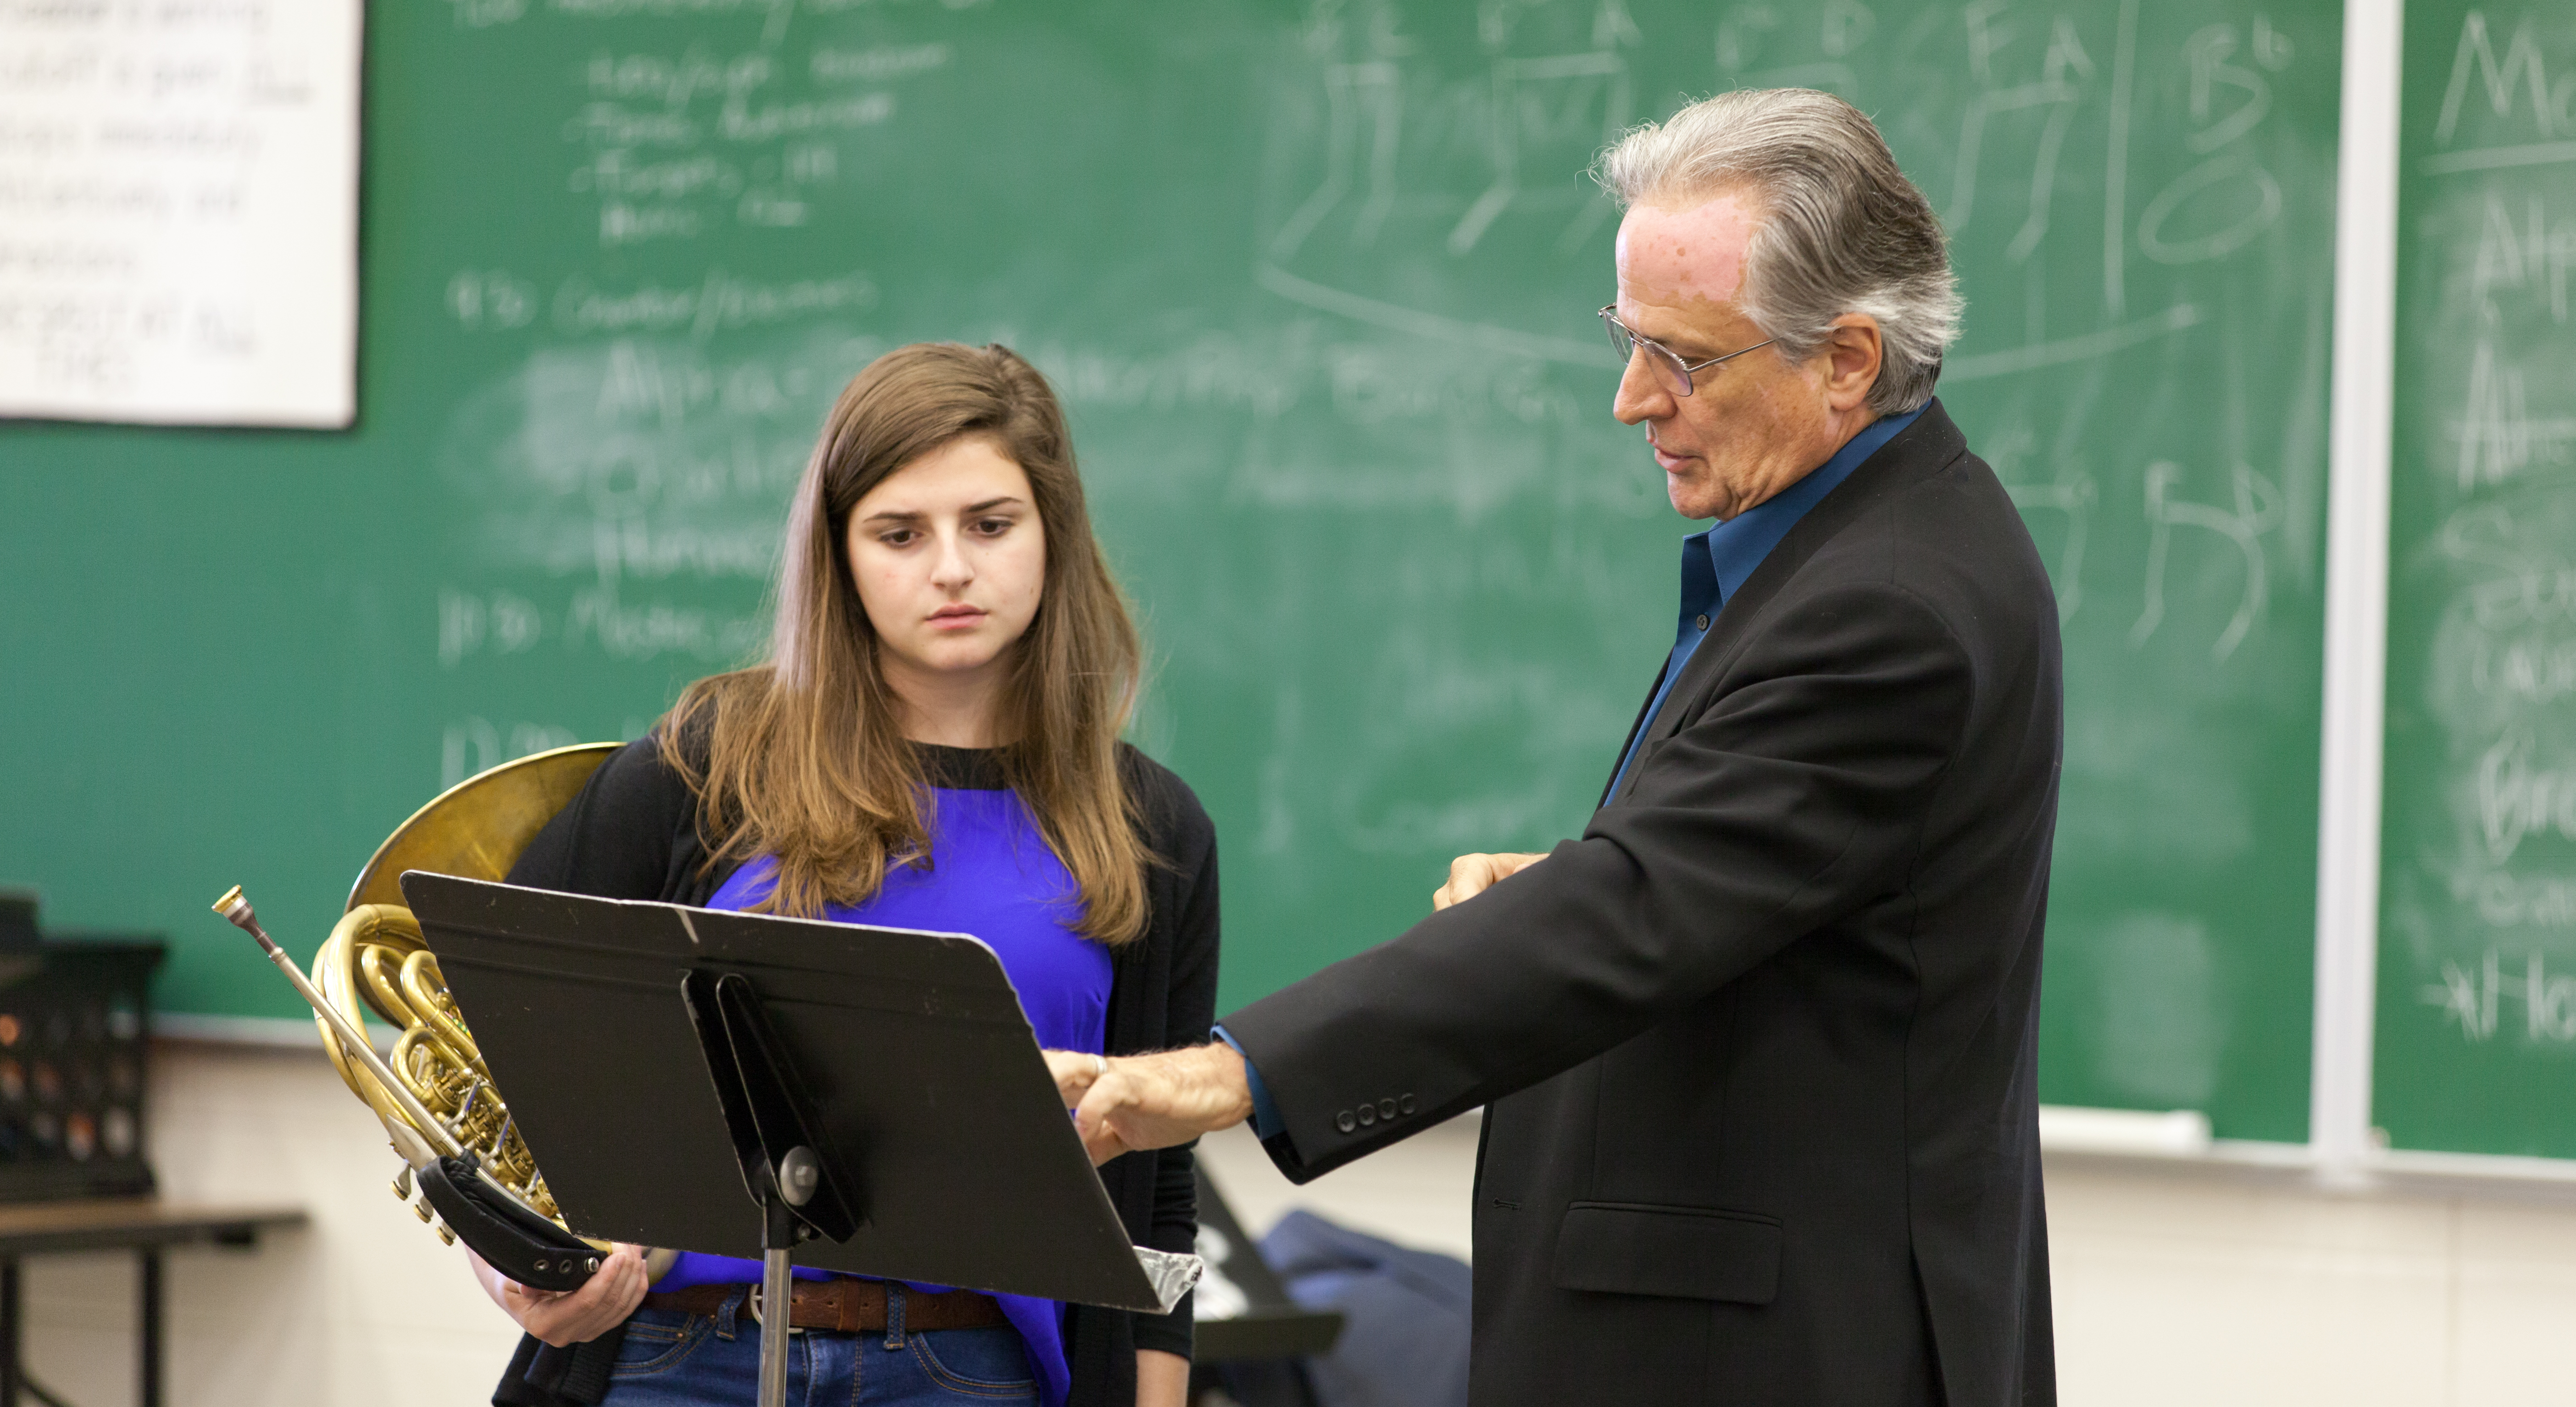 Martin Hackleman works with student